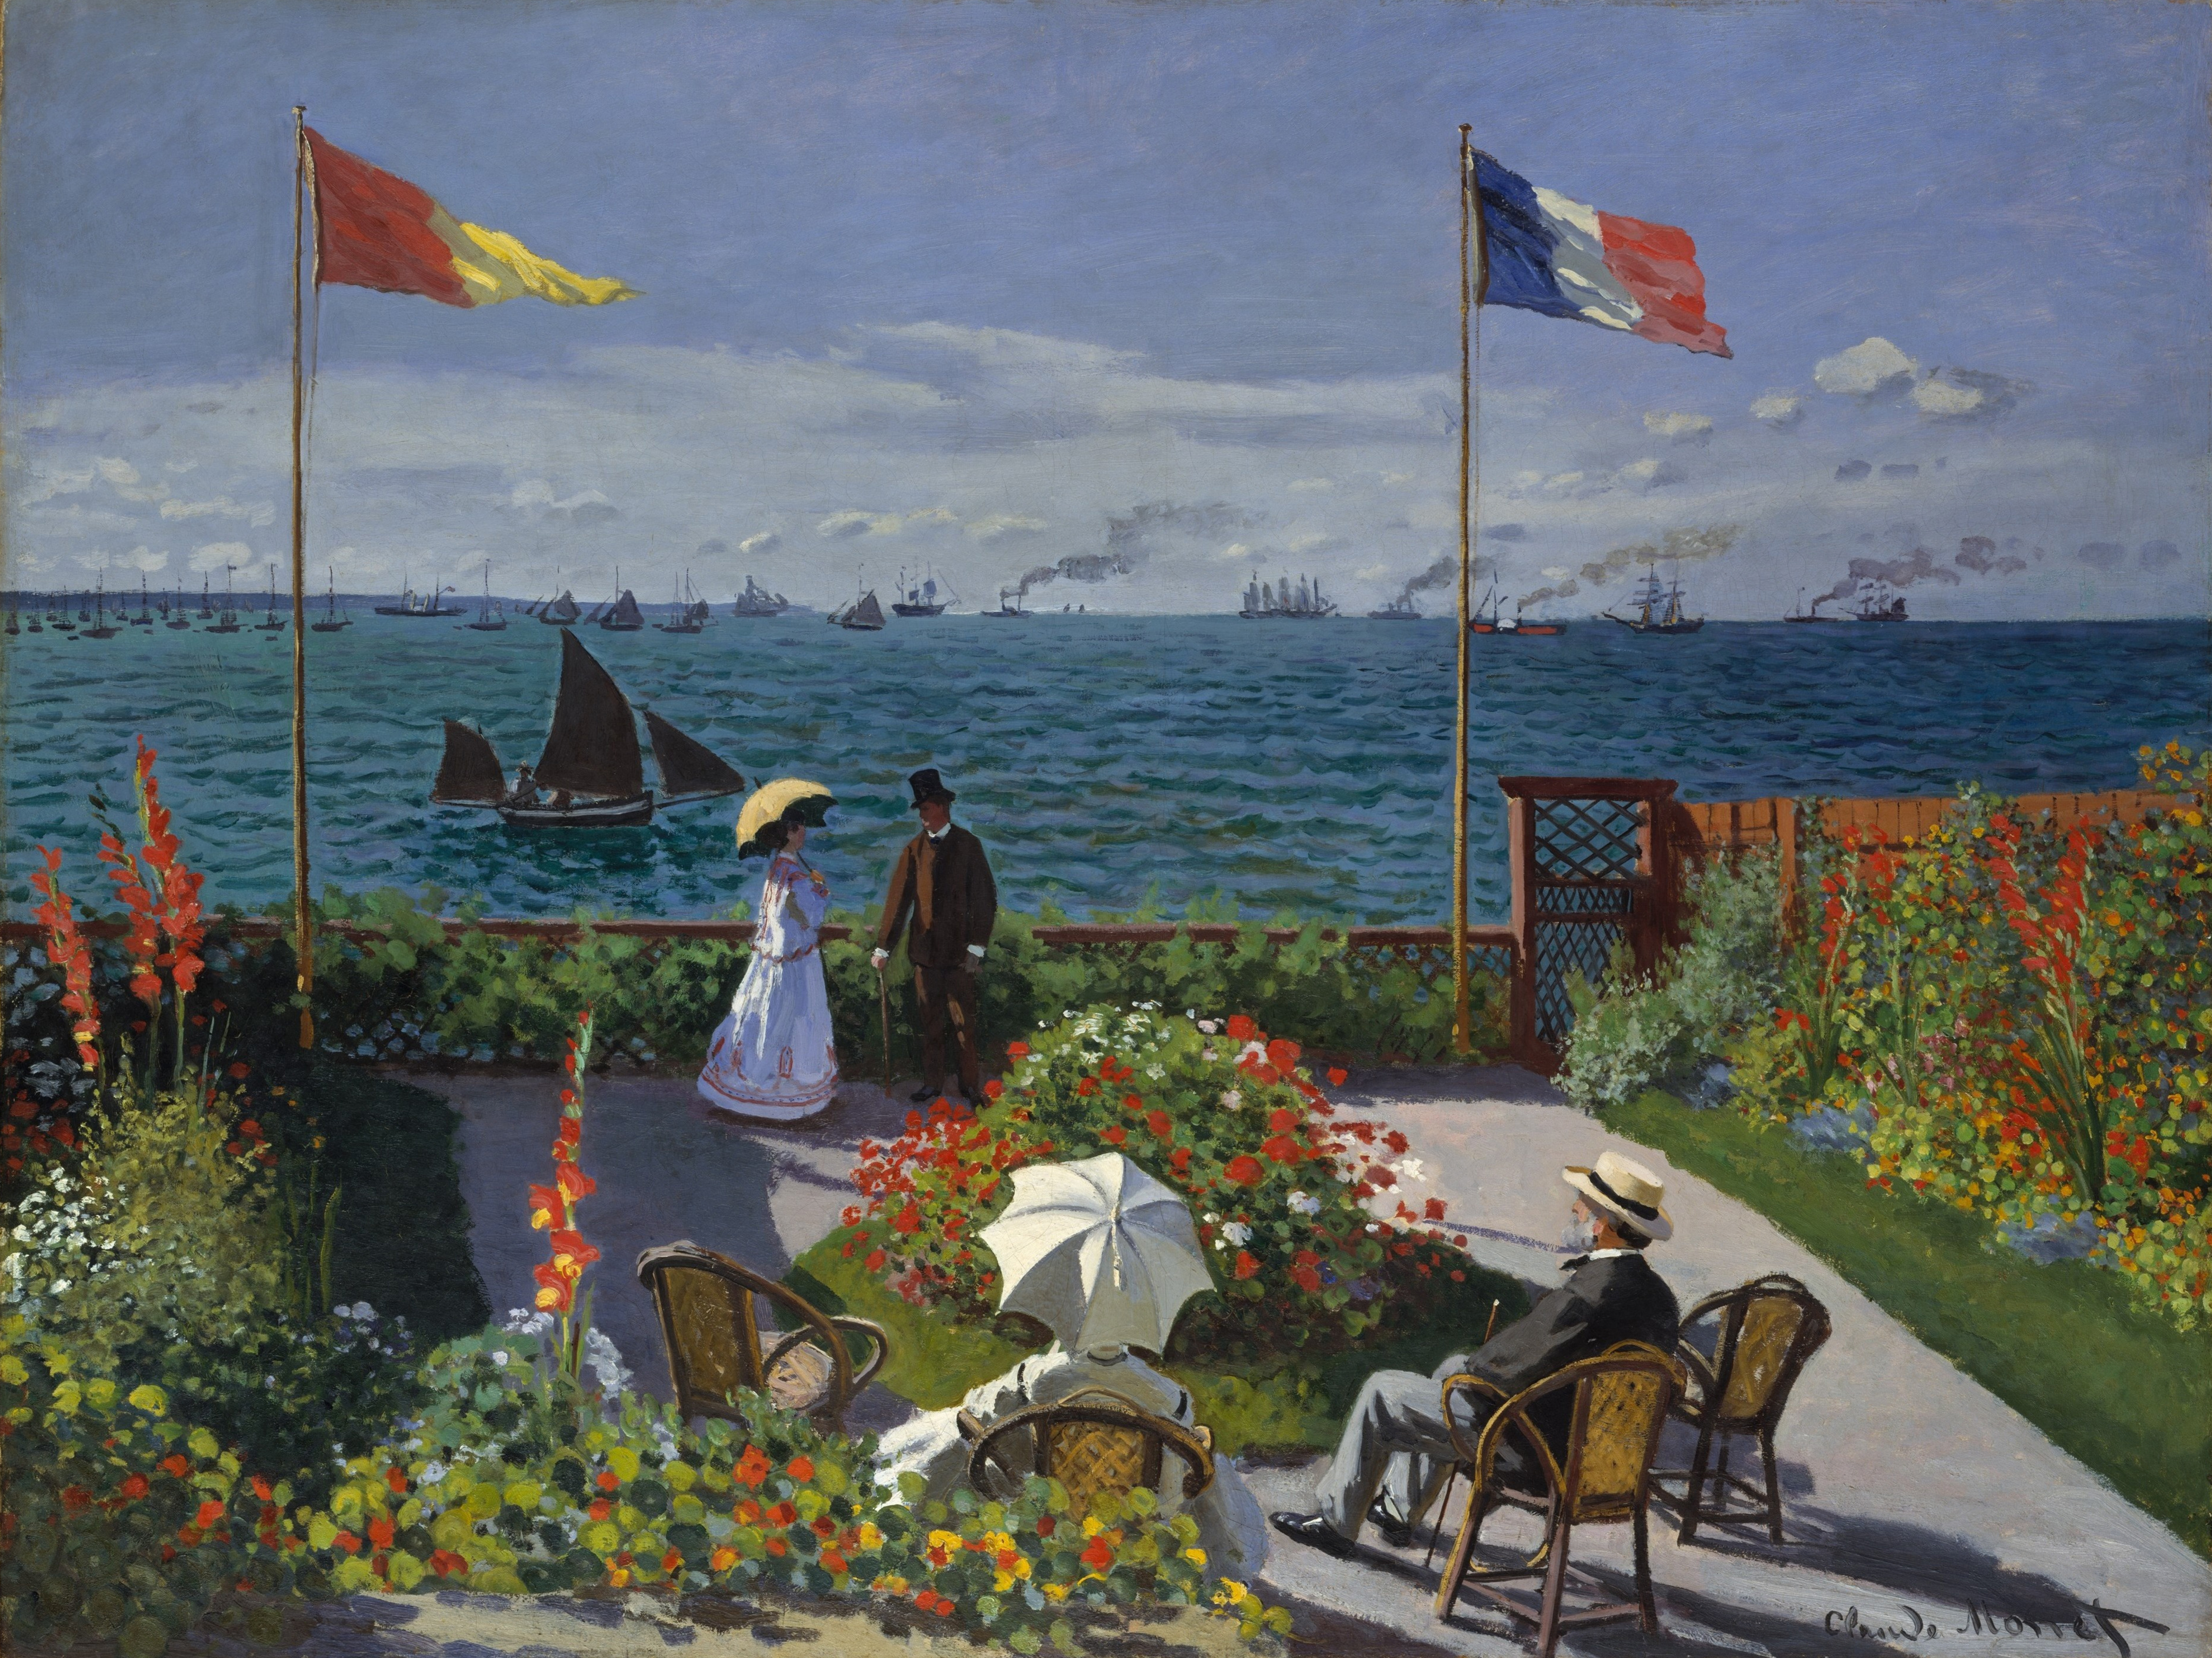 http://upload.wikimedia.org/wikipedia/commons/a/a0/Claude_Monet_-_Jardin_%C3%A0_Sainte-Adresse.jpg